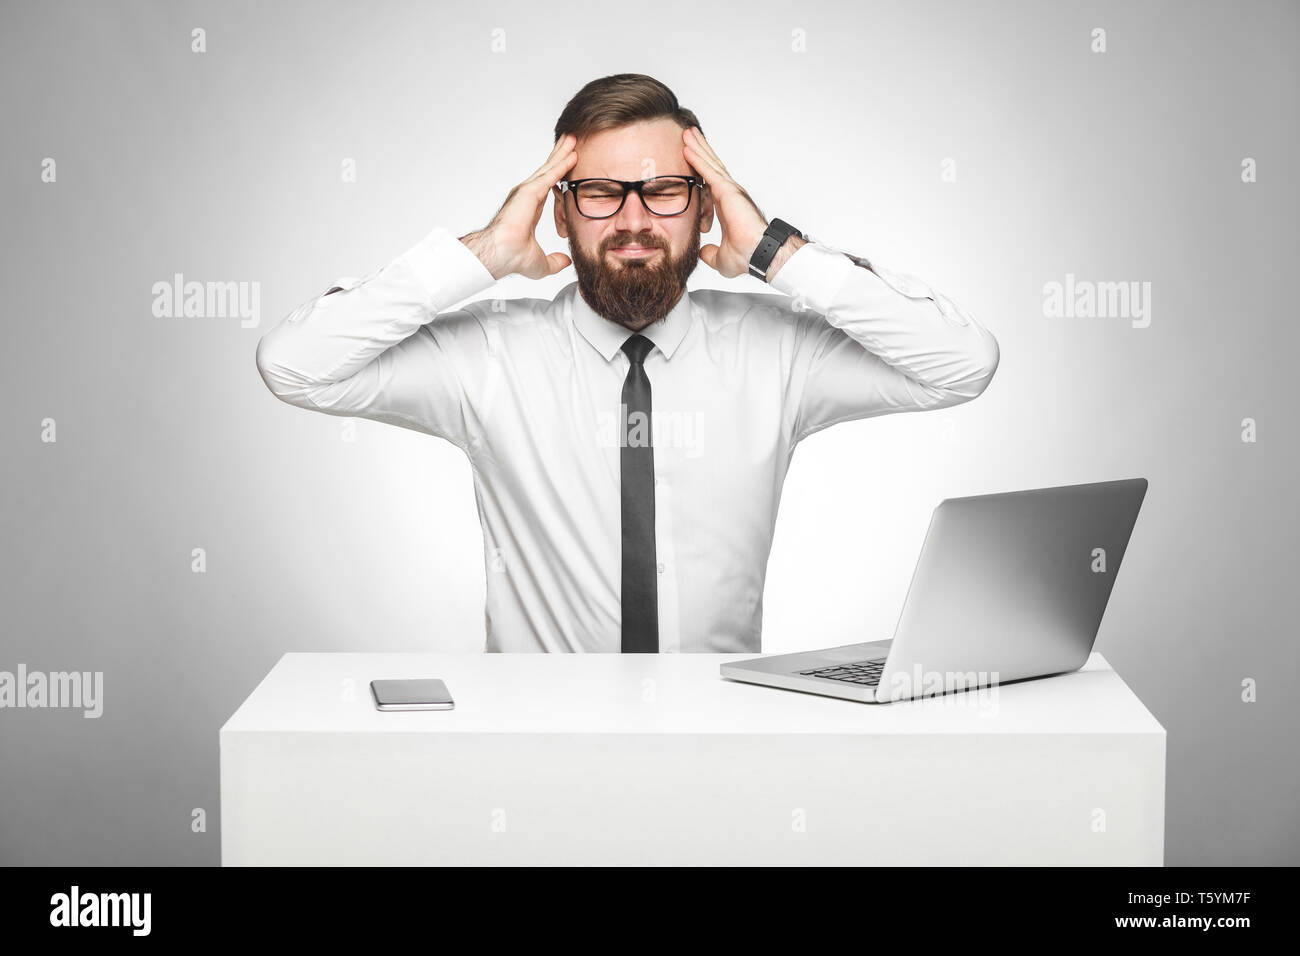 Headache. Portrait of unhealphy painful young manager in white shirt and black tie are sitting in office and have strong headache, holding fingers nea - Stock Image